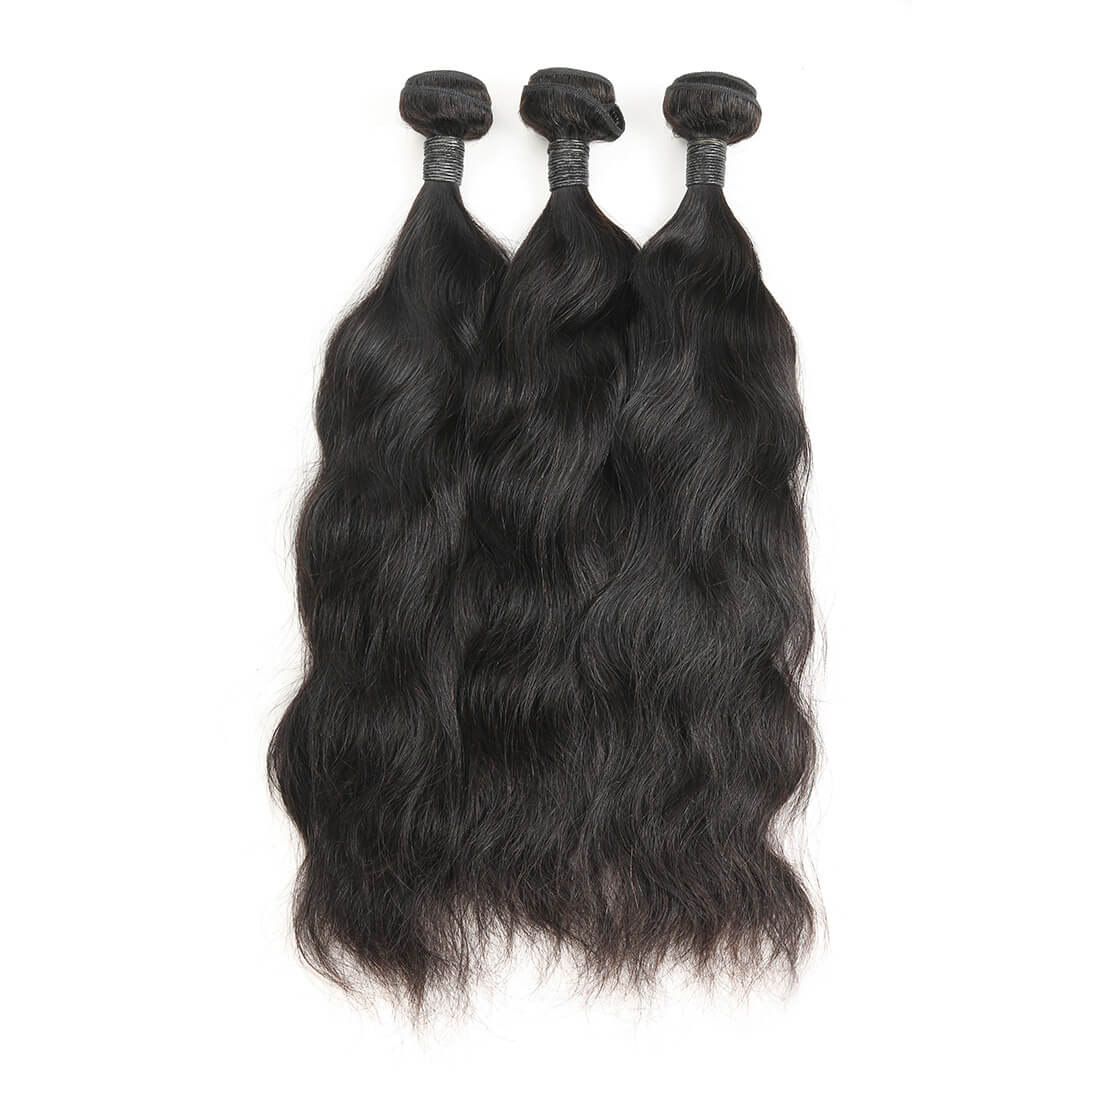 buy-now-pay-later-hair-bundles